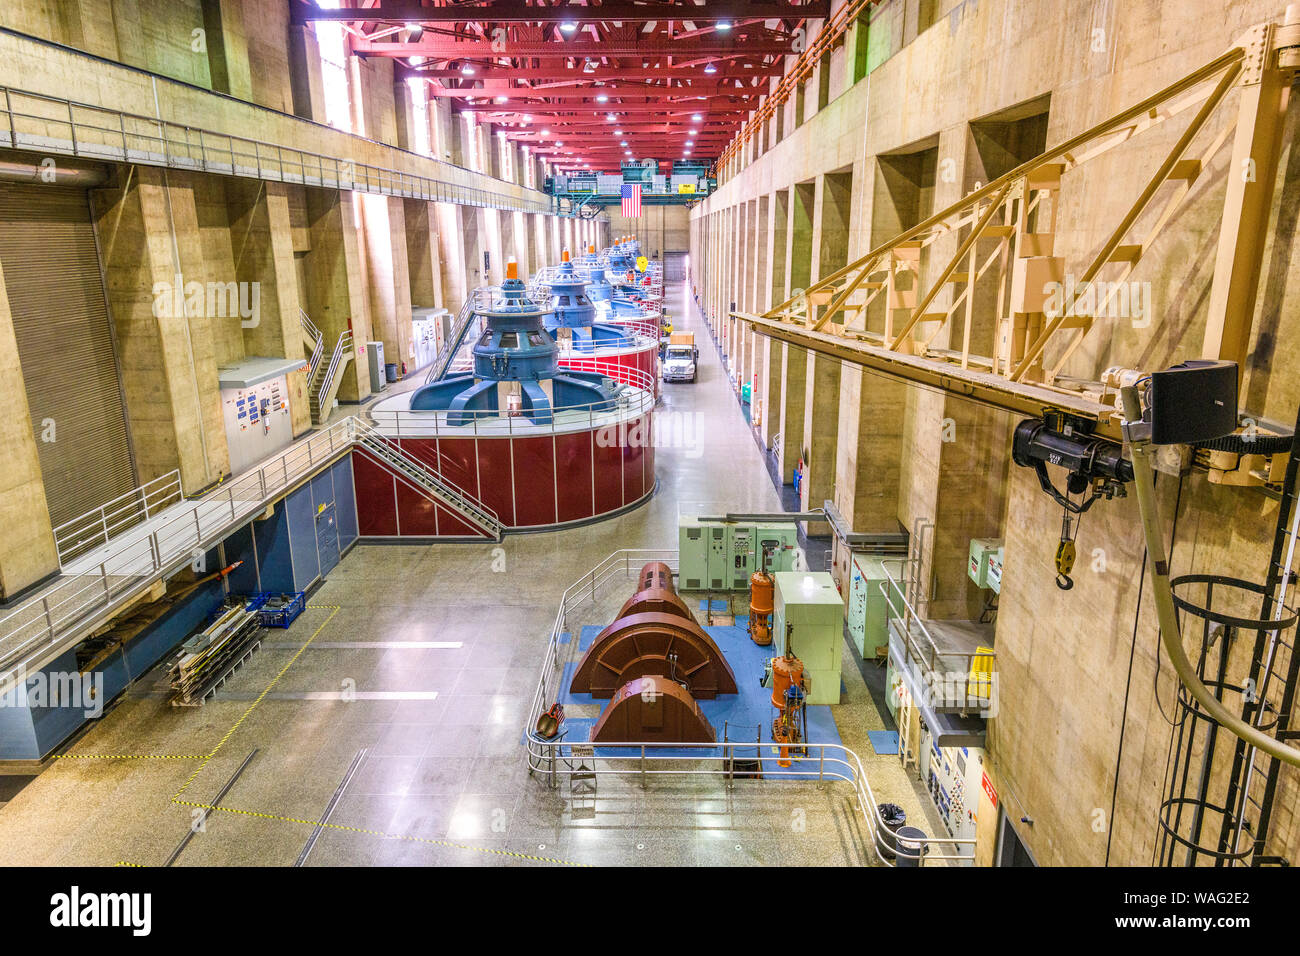 HOOVER DAM, ARIZONA - MAY 12, 2019: Generators of the Hoover Dam Power Plant. The dam was opened in 1936 amidst the Great Depression. Stock Photo